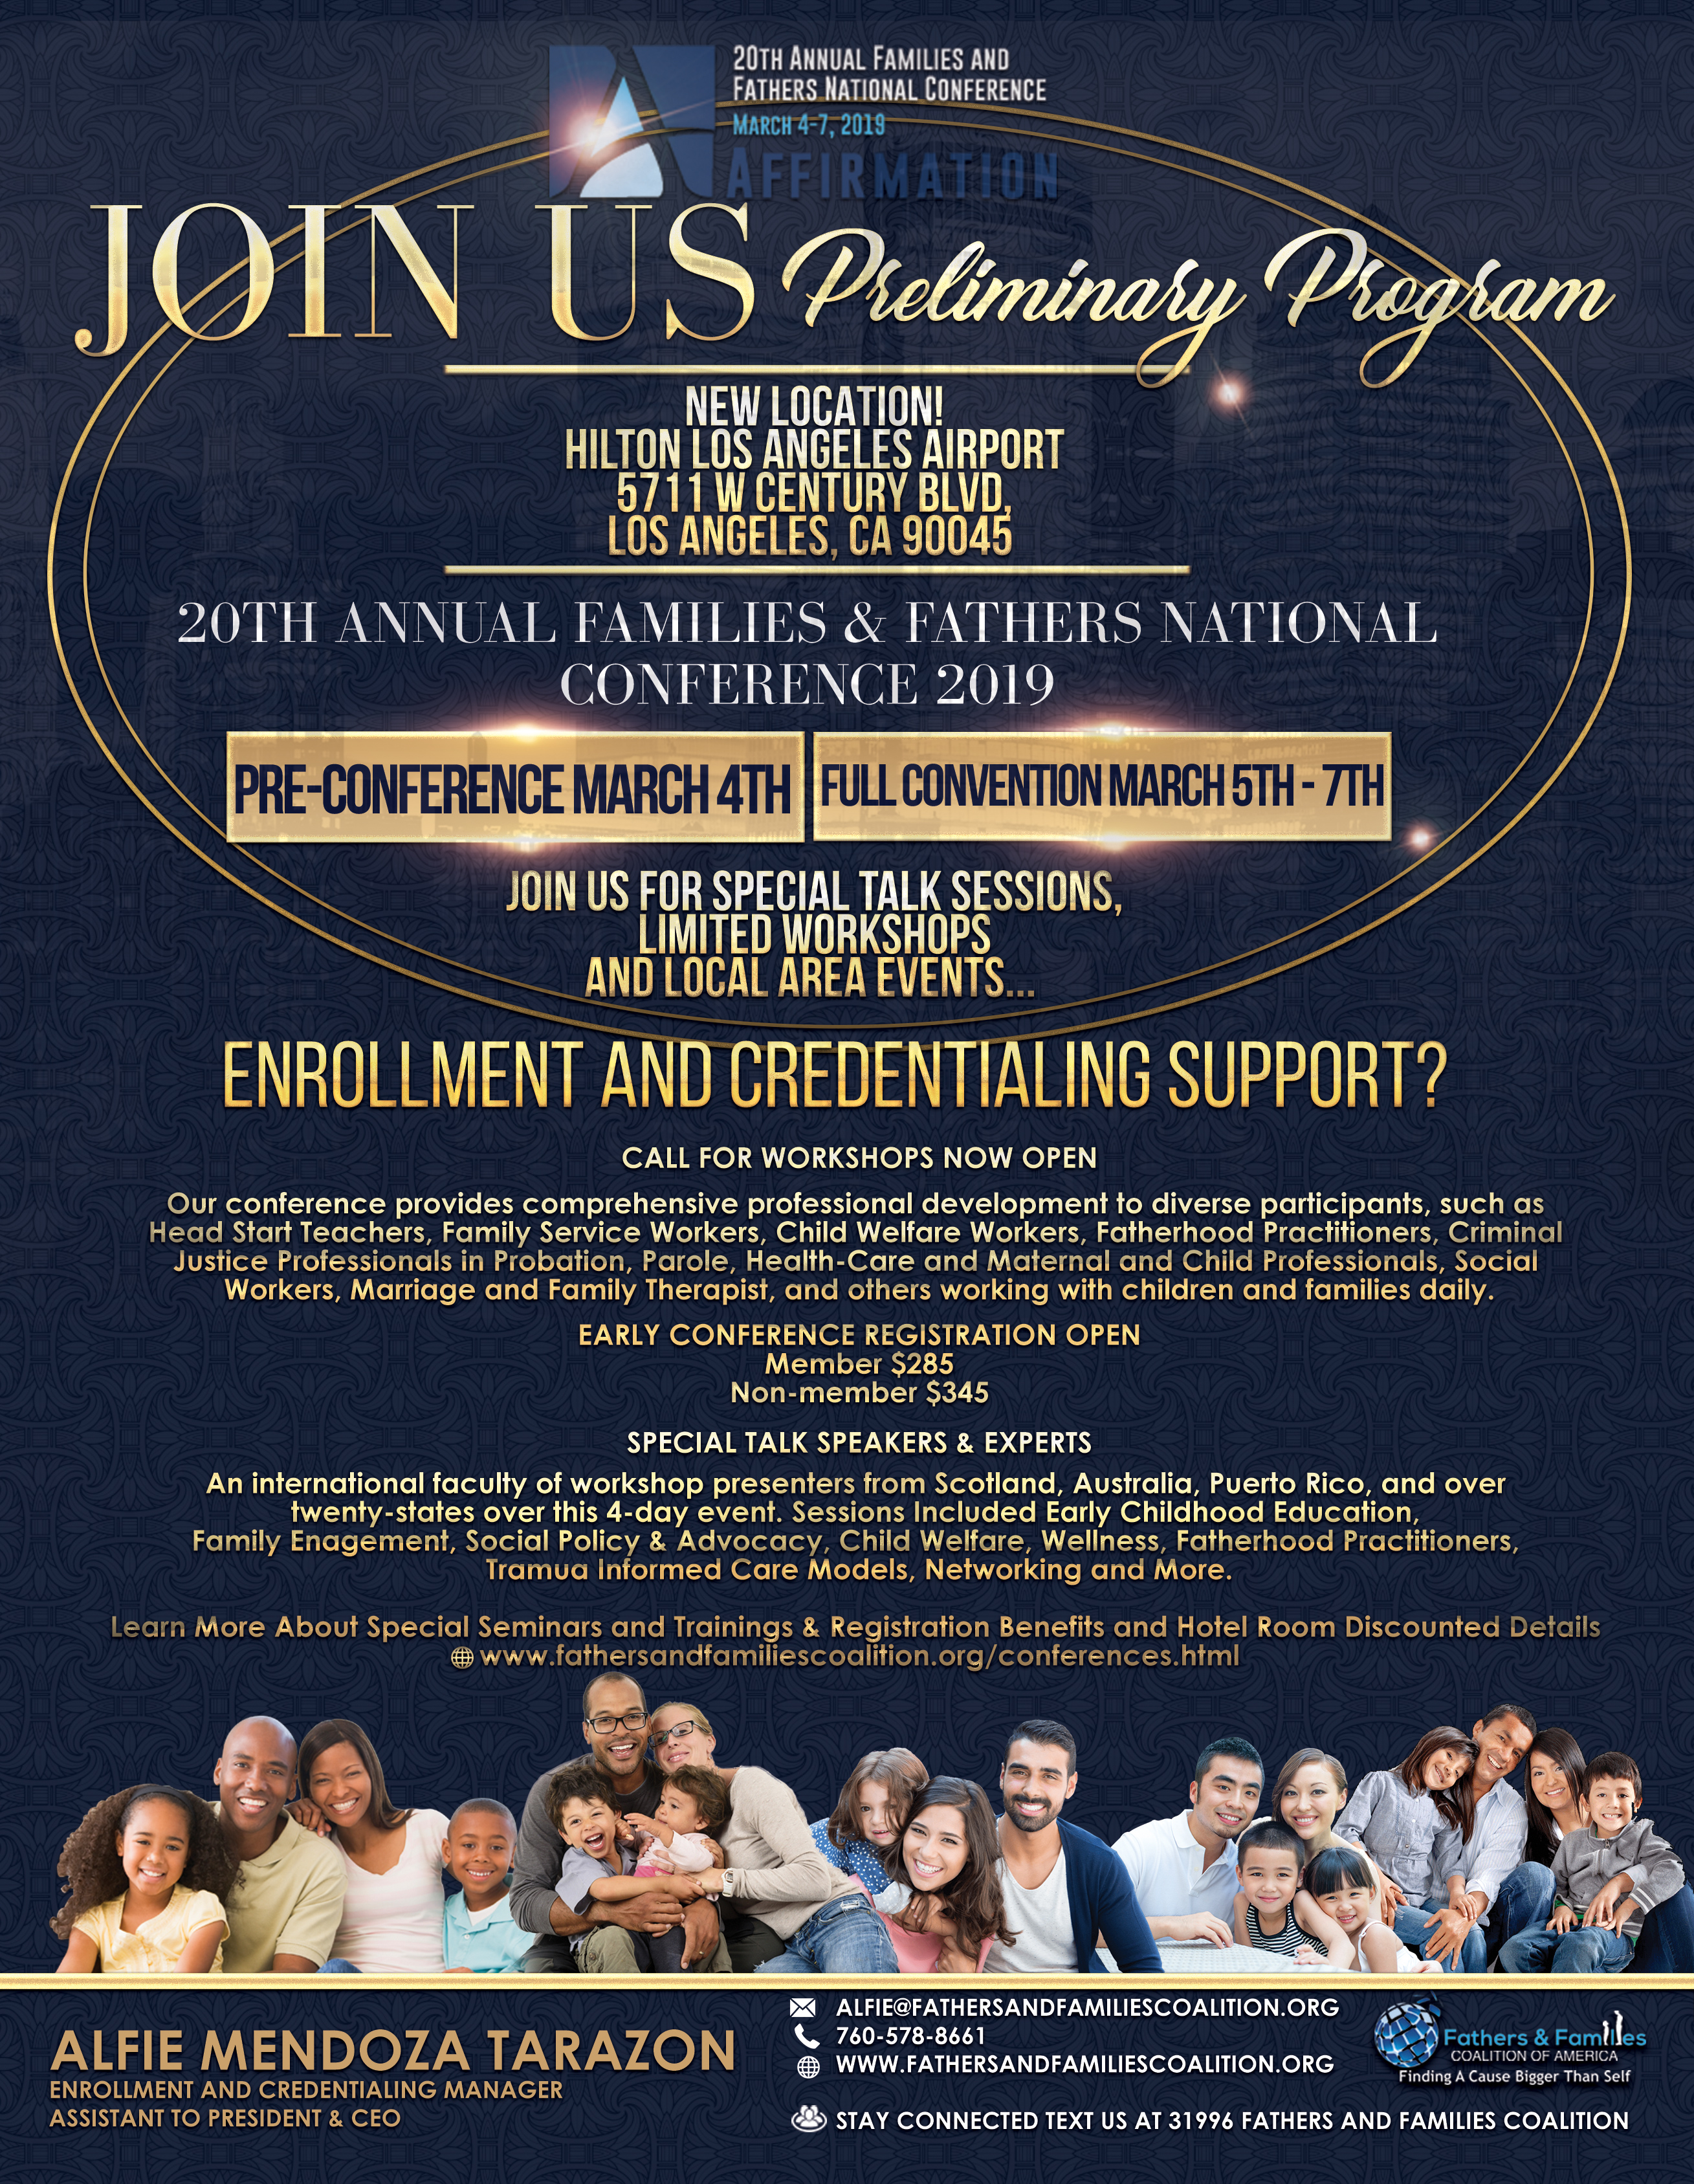 20th Annual Families and Fathers Conference - FFCA